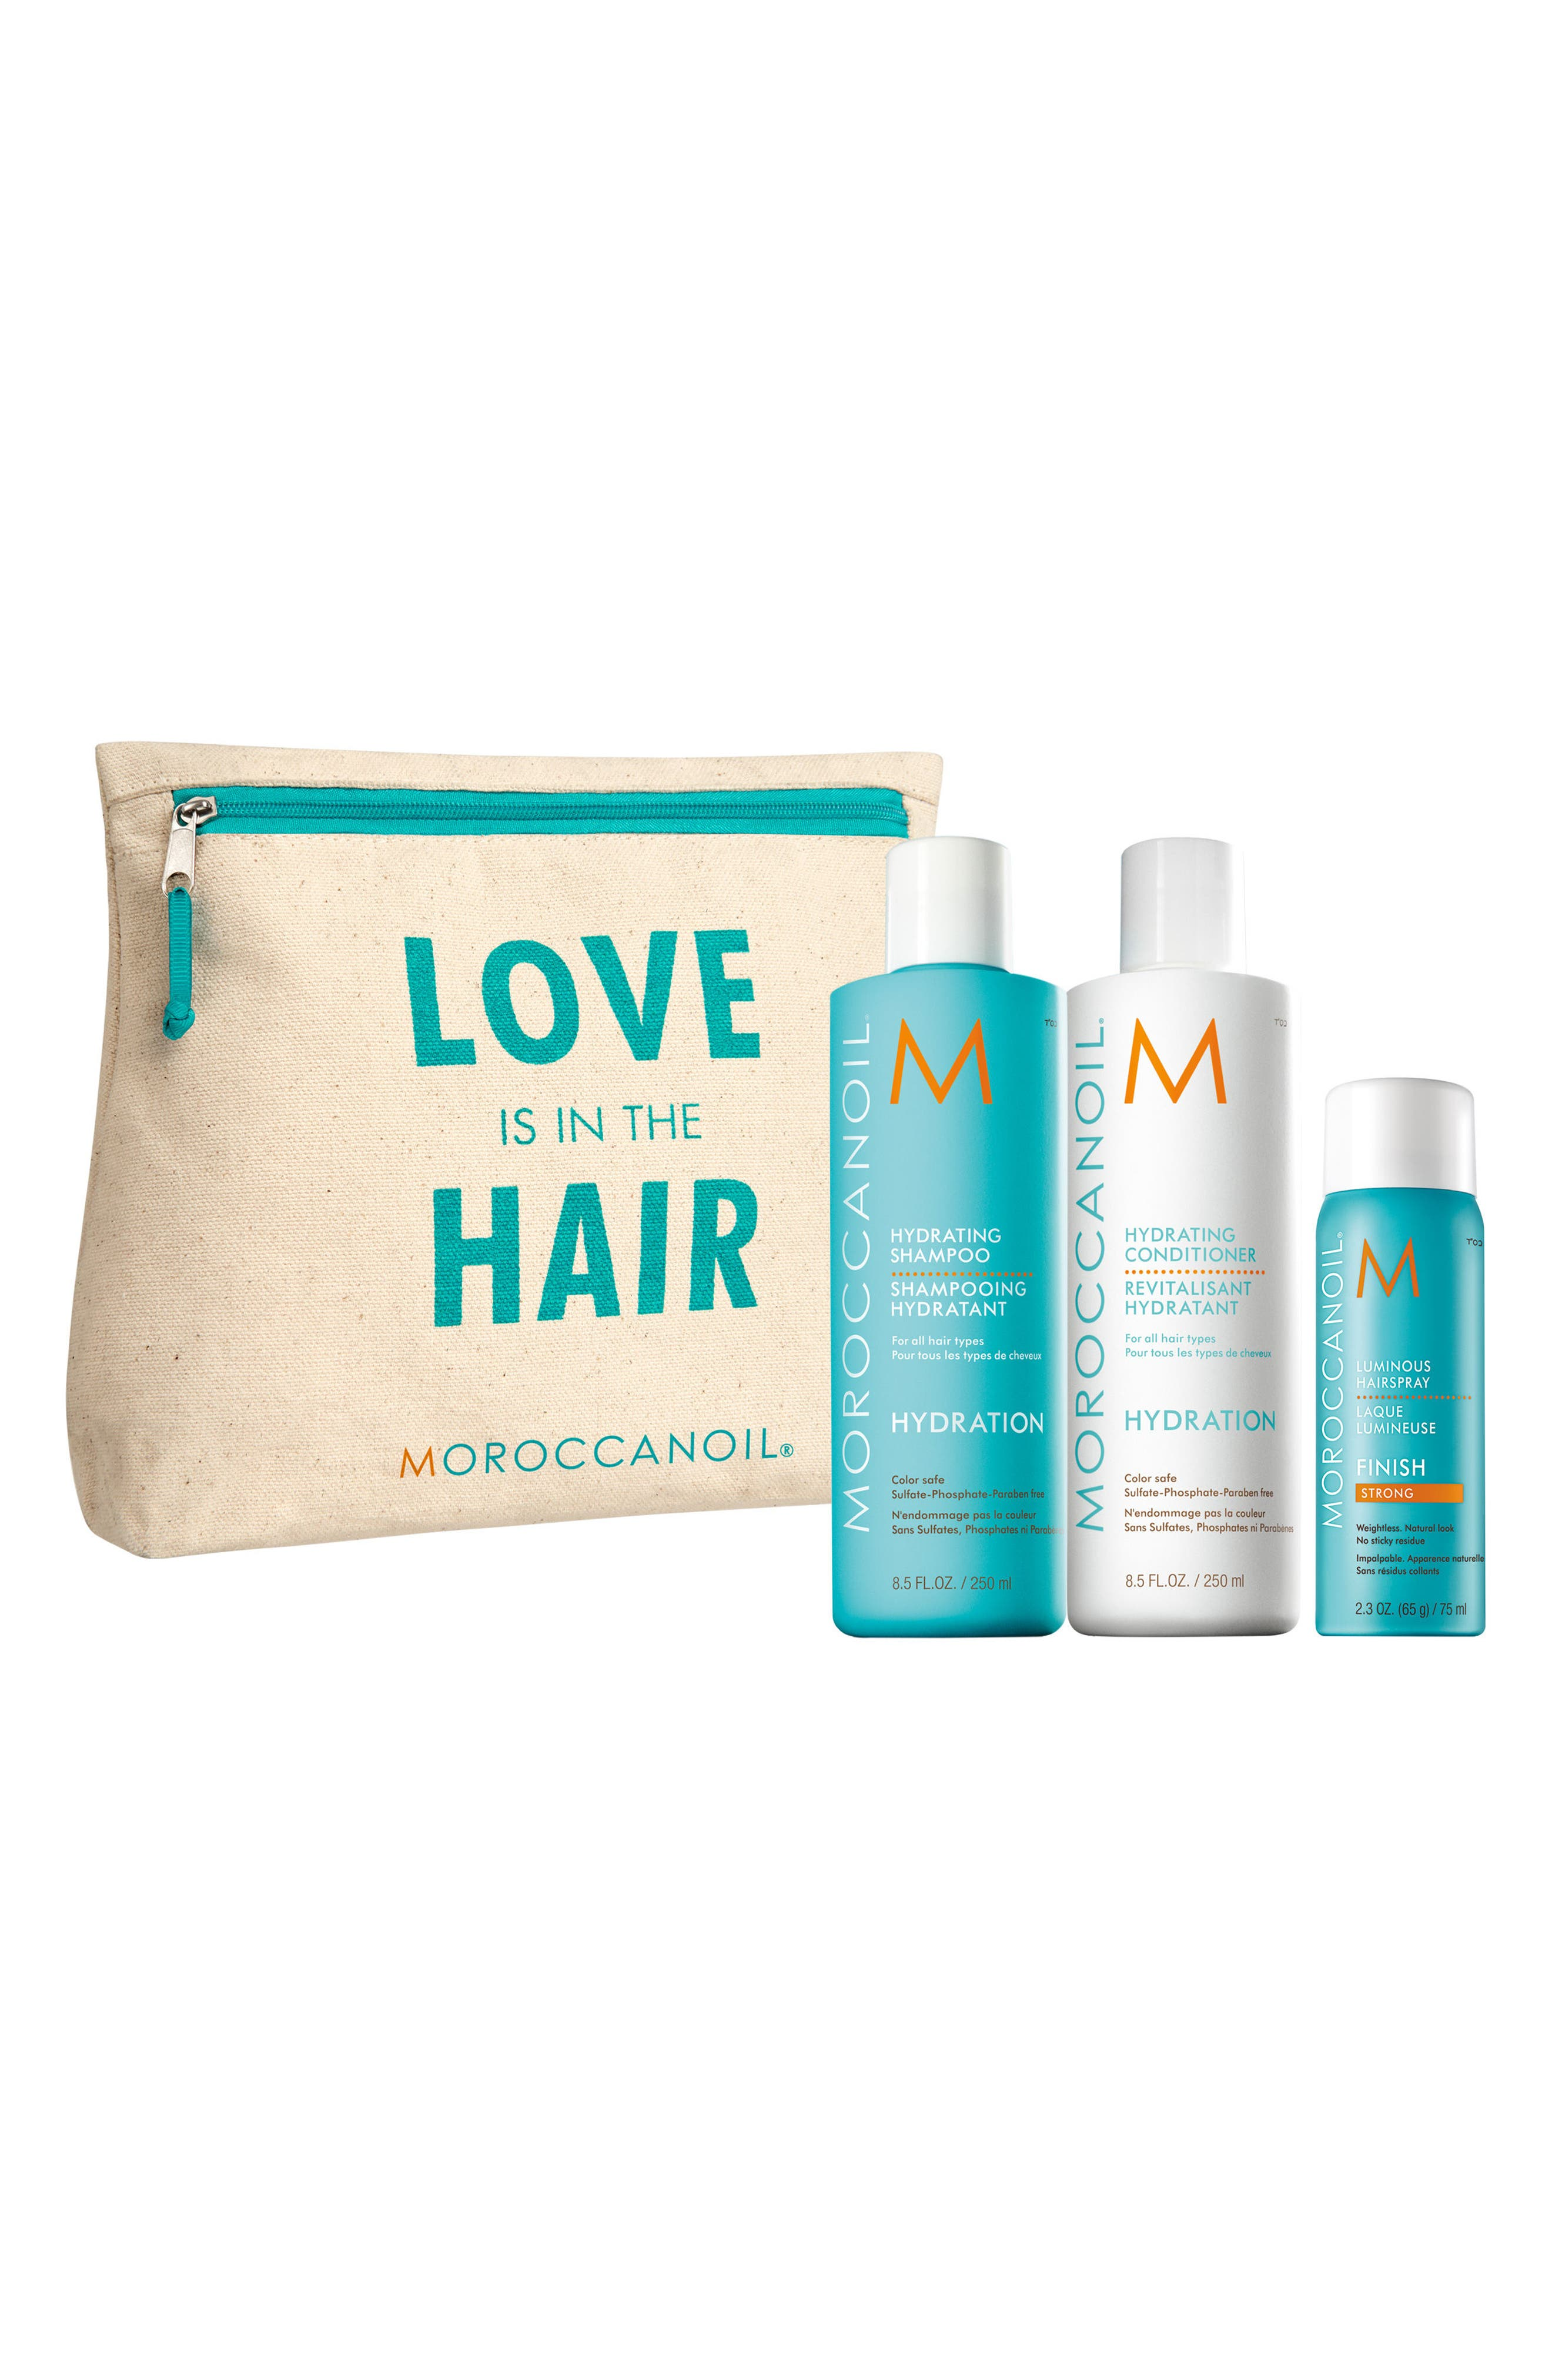 Main Image - MOROCCANOIL® Love is in the Hair Hydration Set ($57 Value)